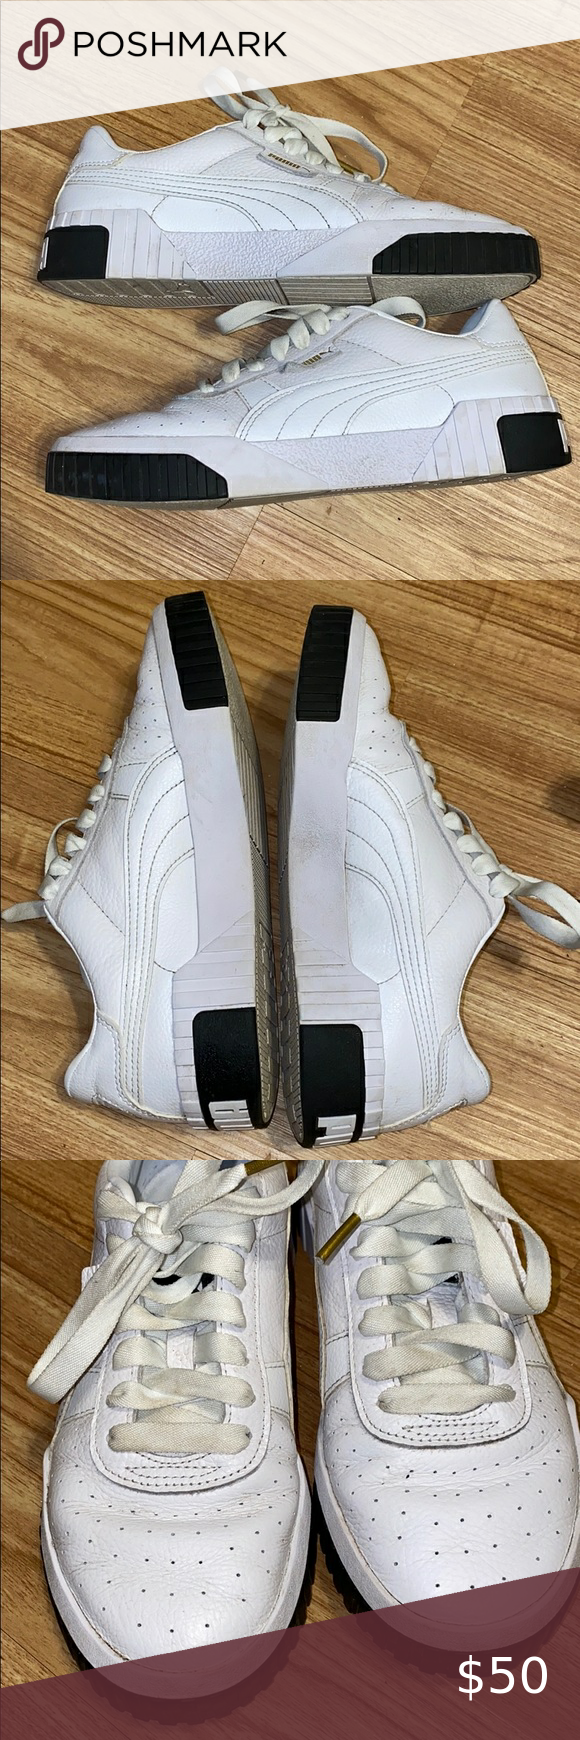 Old School Puma Shoes. Worn Twice. Perfect condition